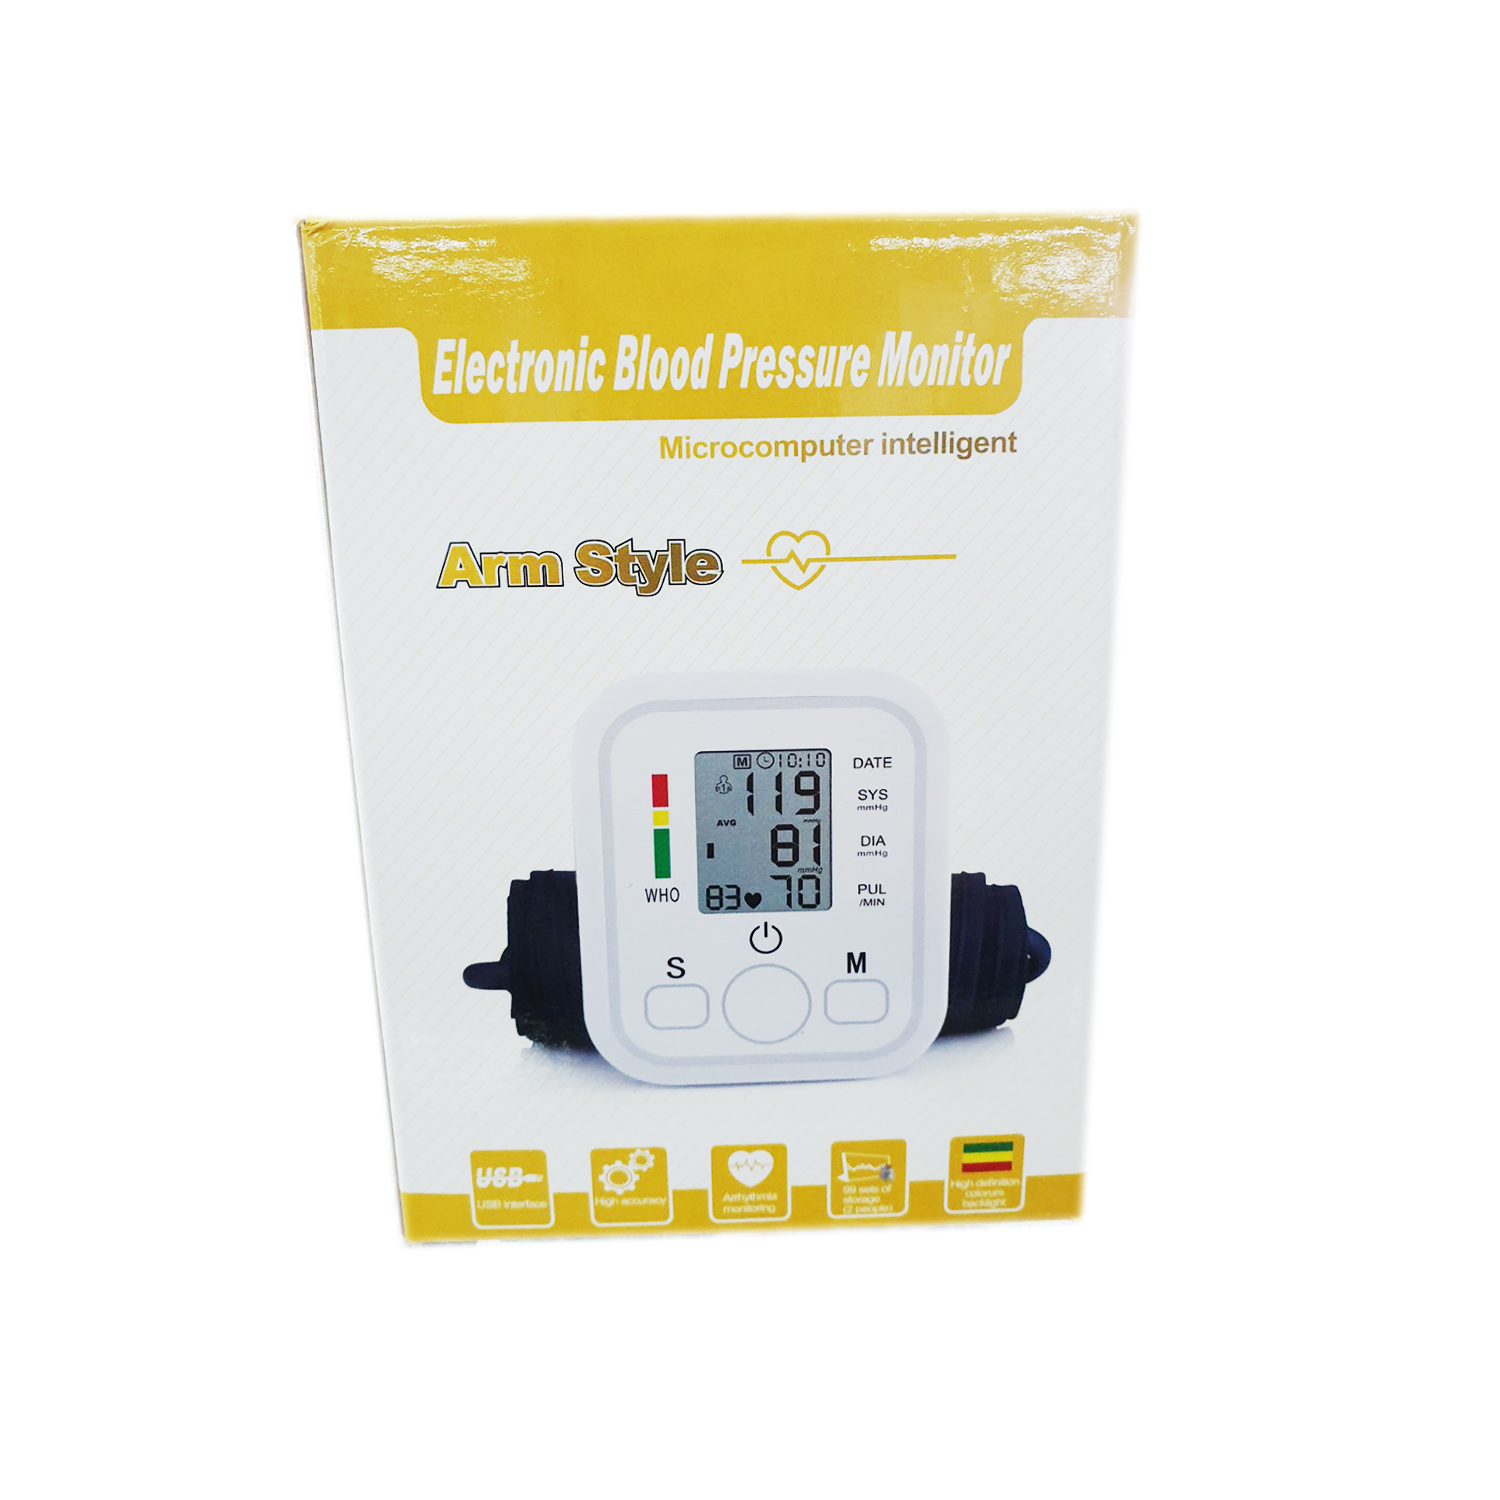 Blood Pressure Monitor #31911.1220.11